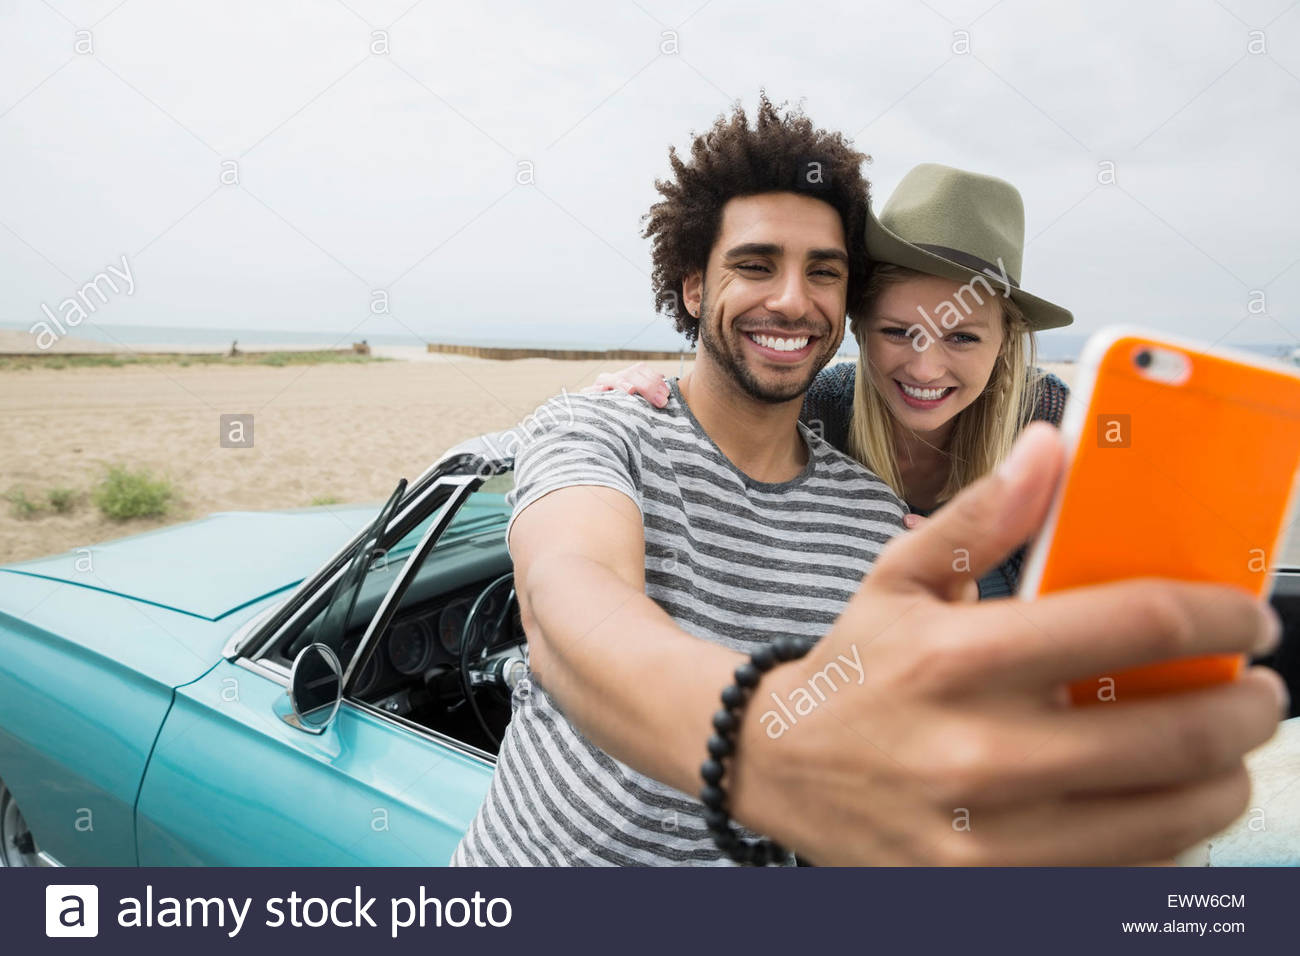 Young couple taking selfie in convertible at beach Stock Photo